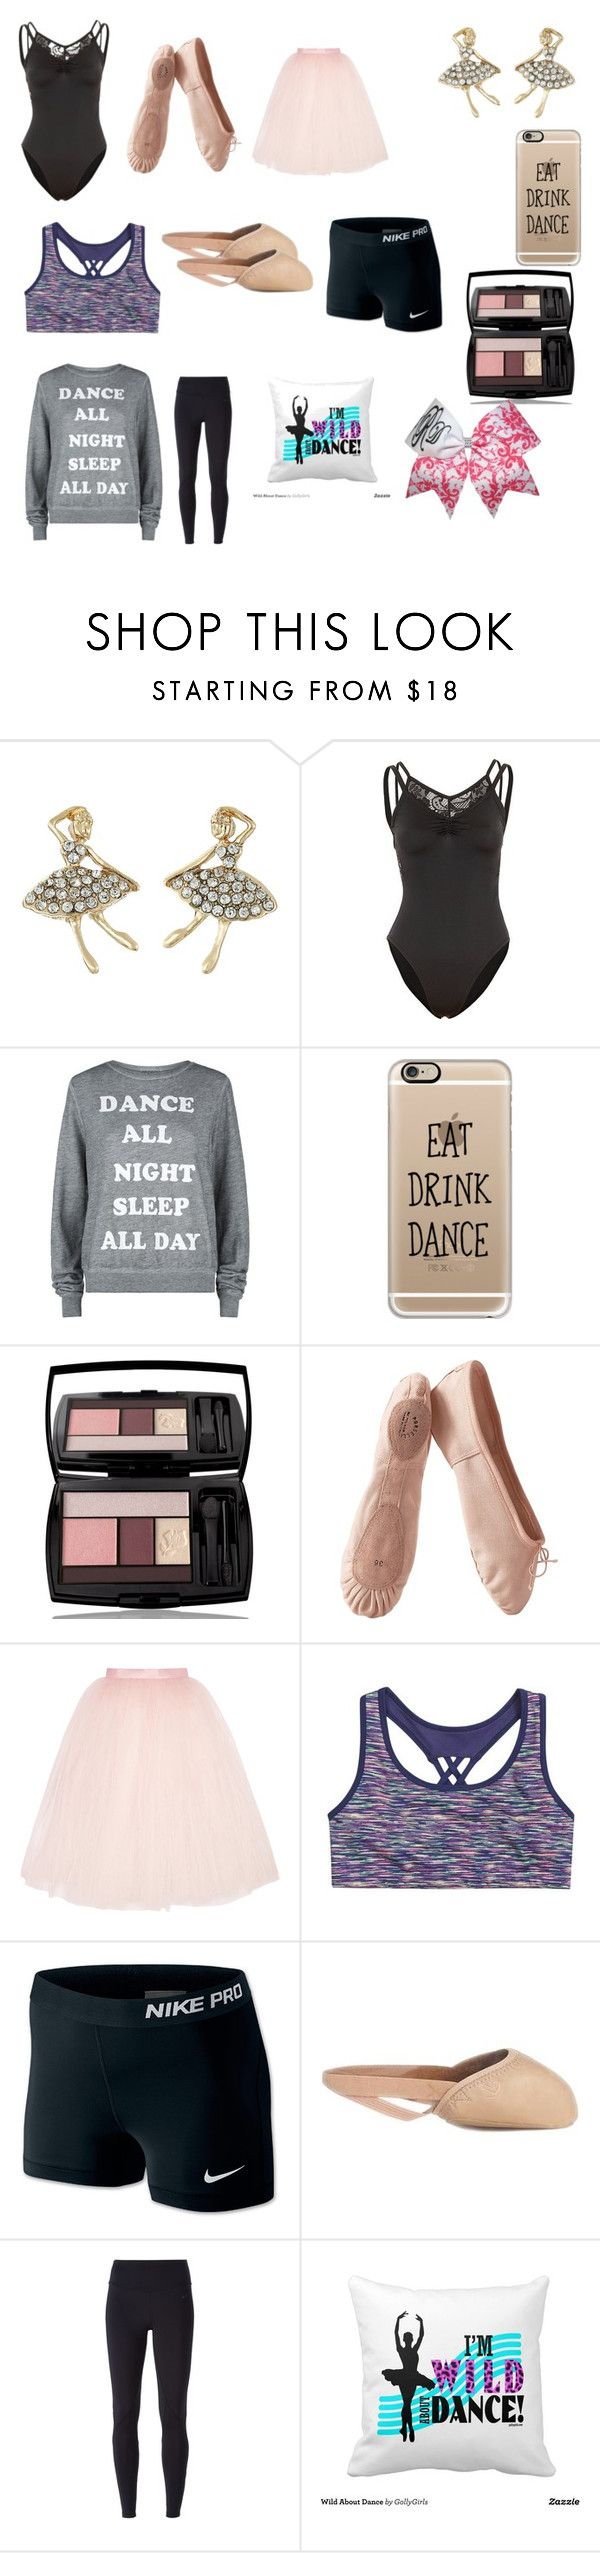 """Dance practice outfits"" by lizbiz1315 ❤ liked on Polyvore featuring Betsey Johnson, Wildfox, Casetify, Lancôme, Porselli, Ballet Beautiful, NIKE and Capezio"